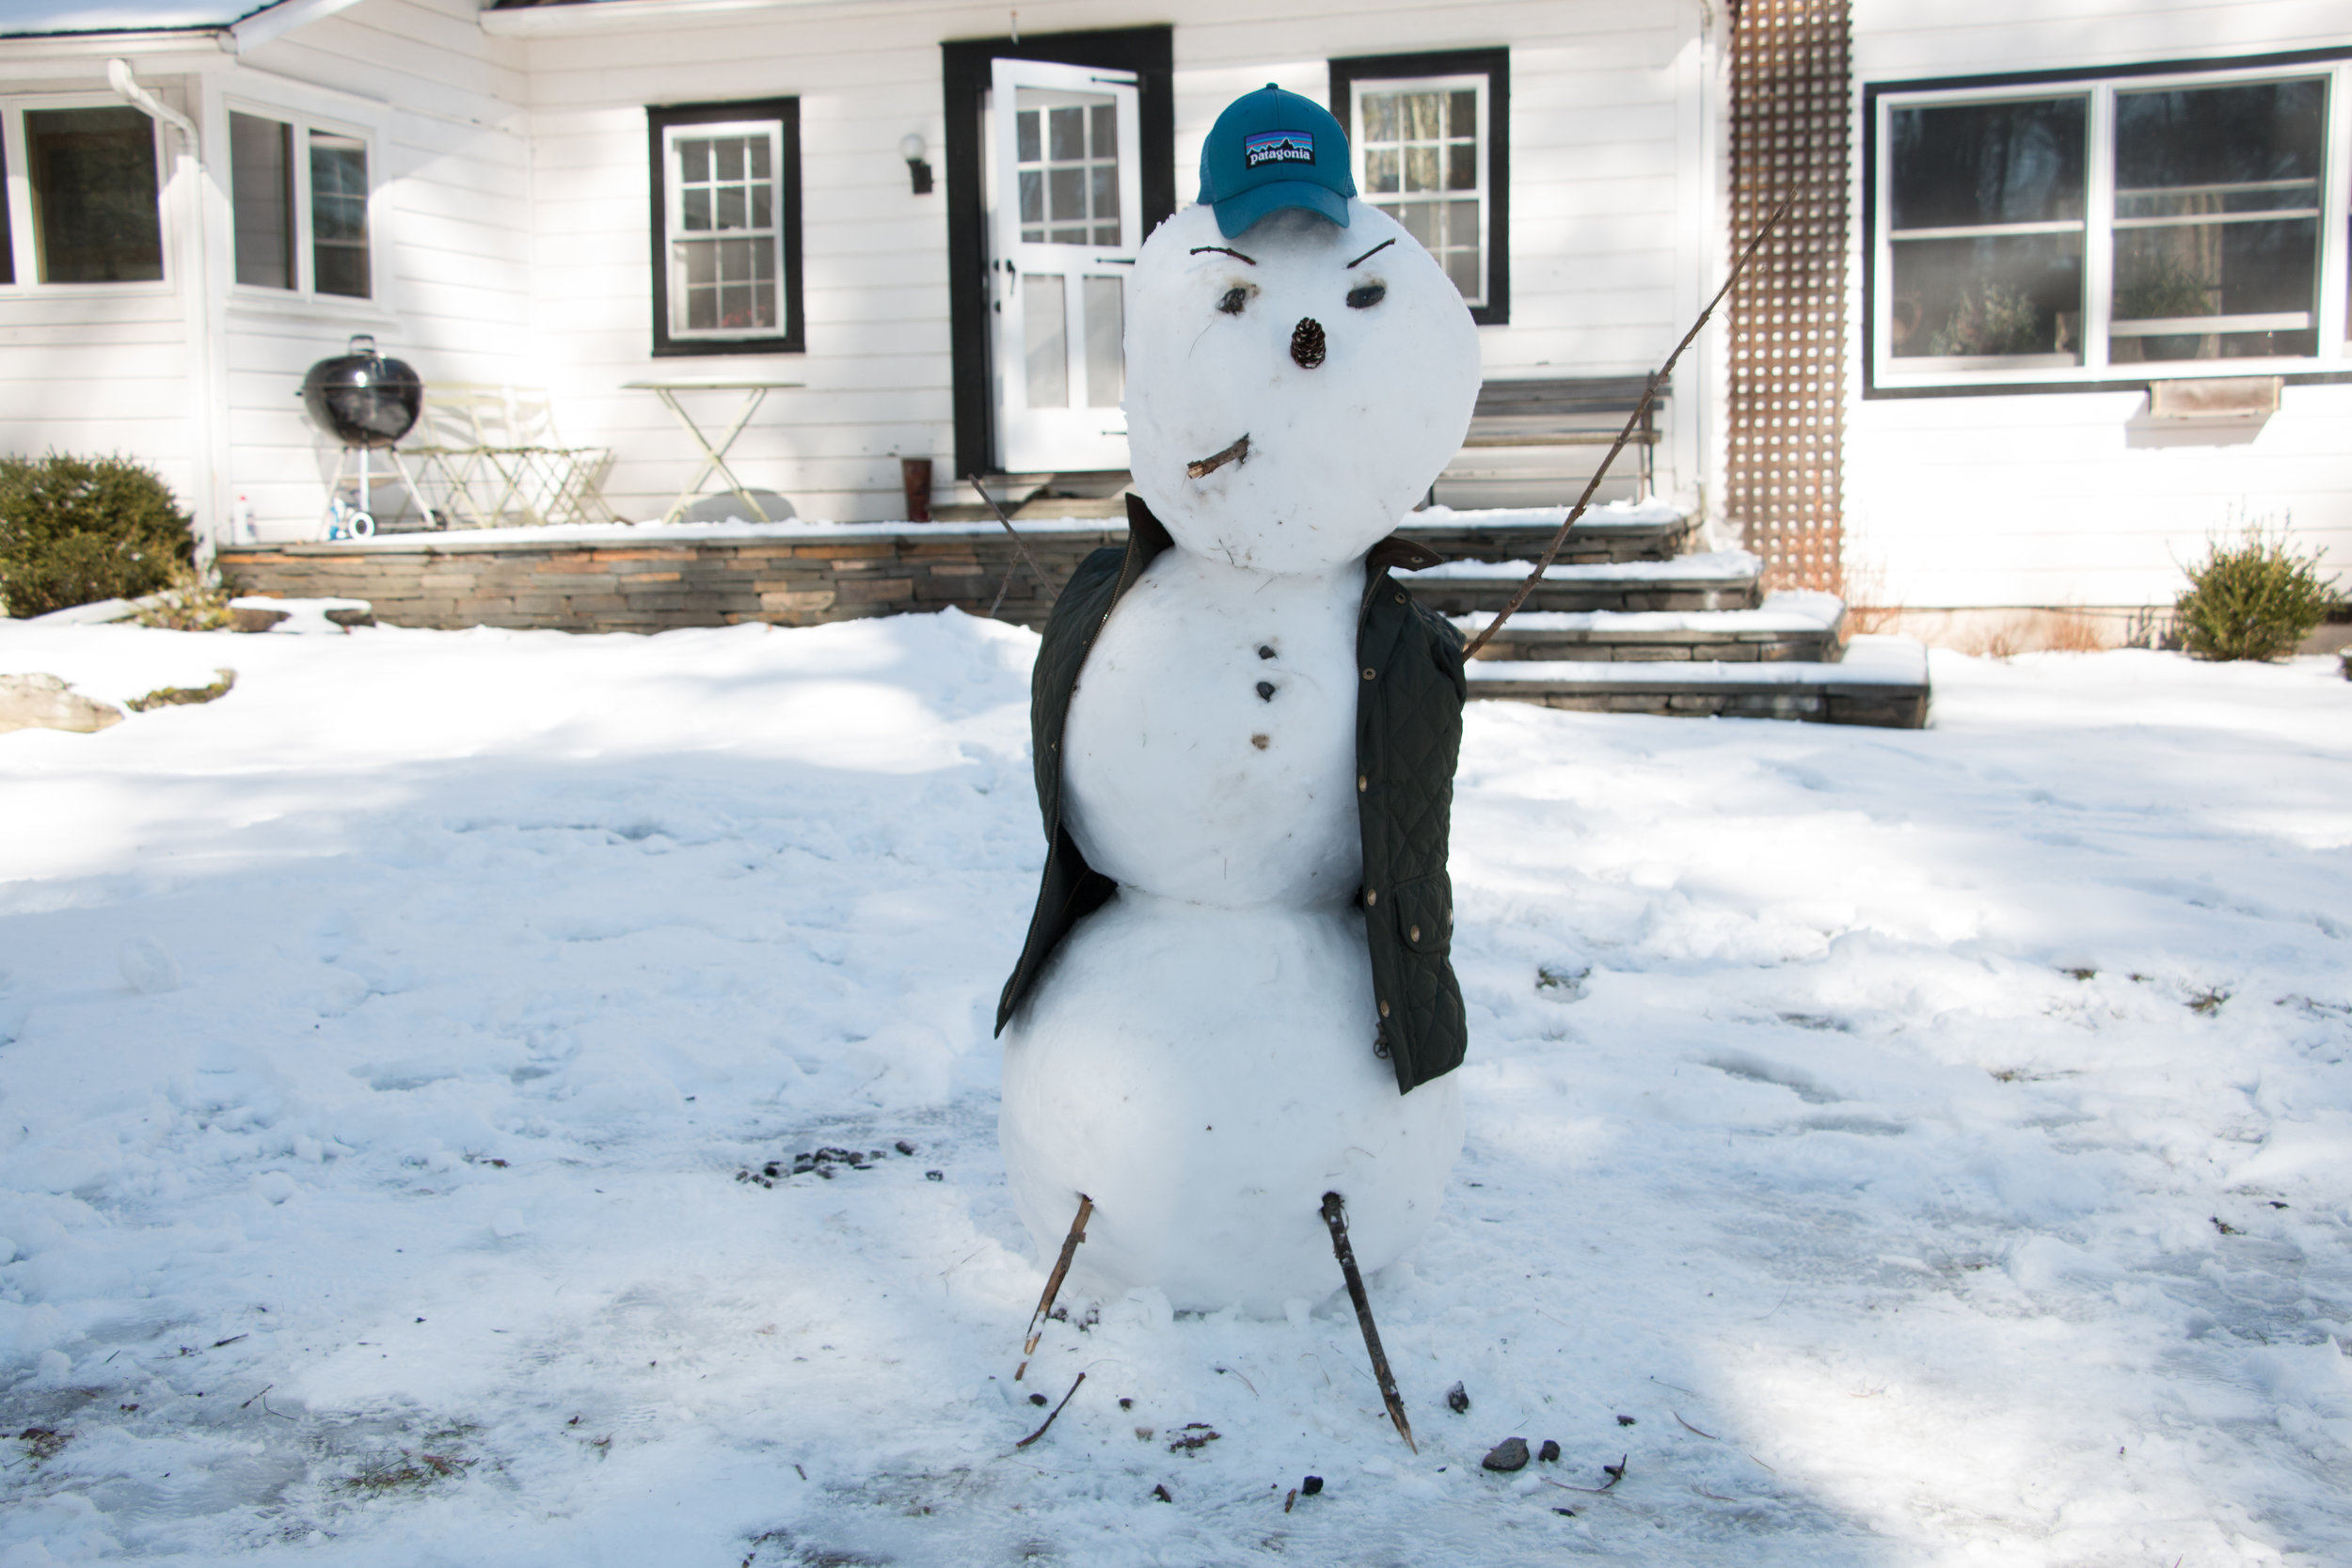 Snowman - Conceptualized & Built by Jake & Josh